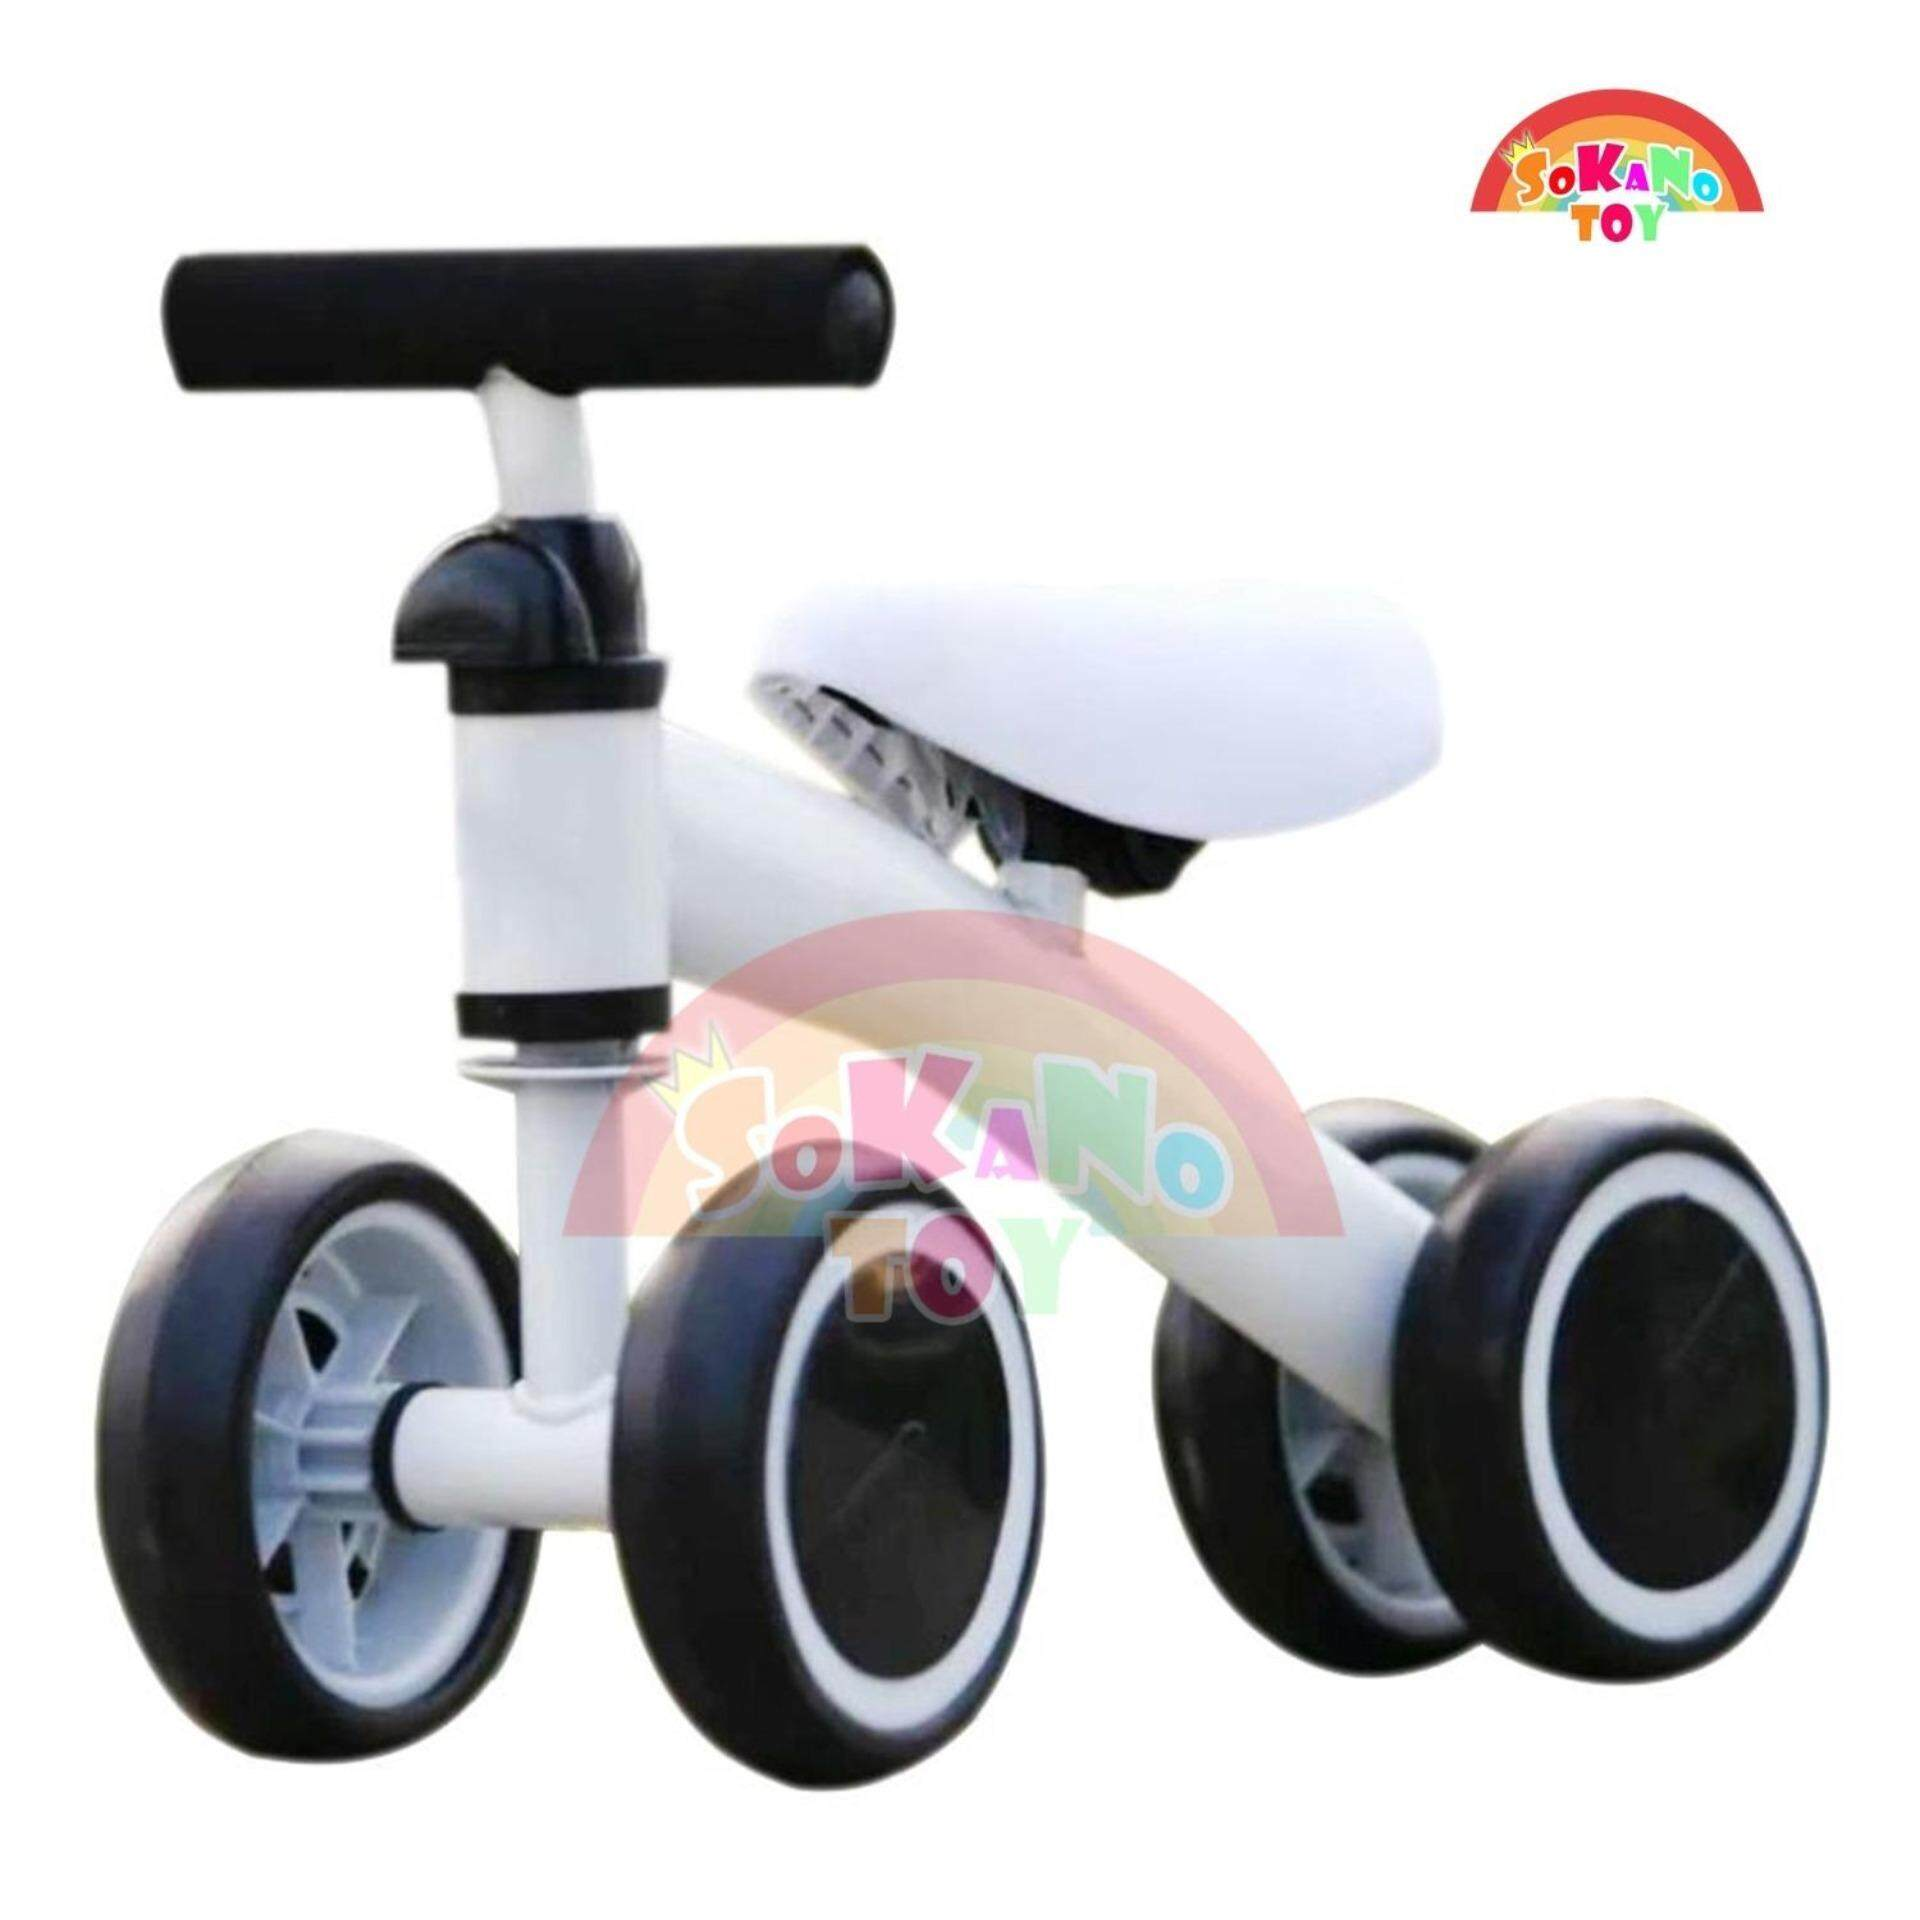 SOKANO TOY T004 Children Balance Bikes Scooter Baby Walker Infant 1-3 years Scooter- White